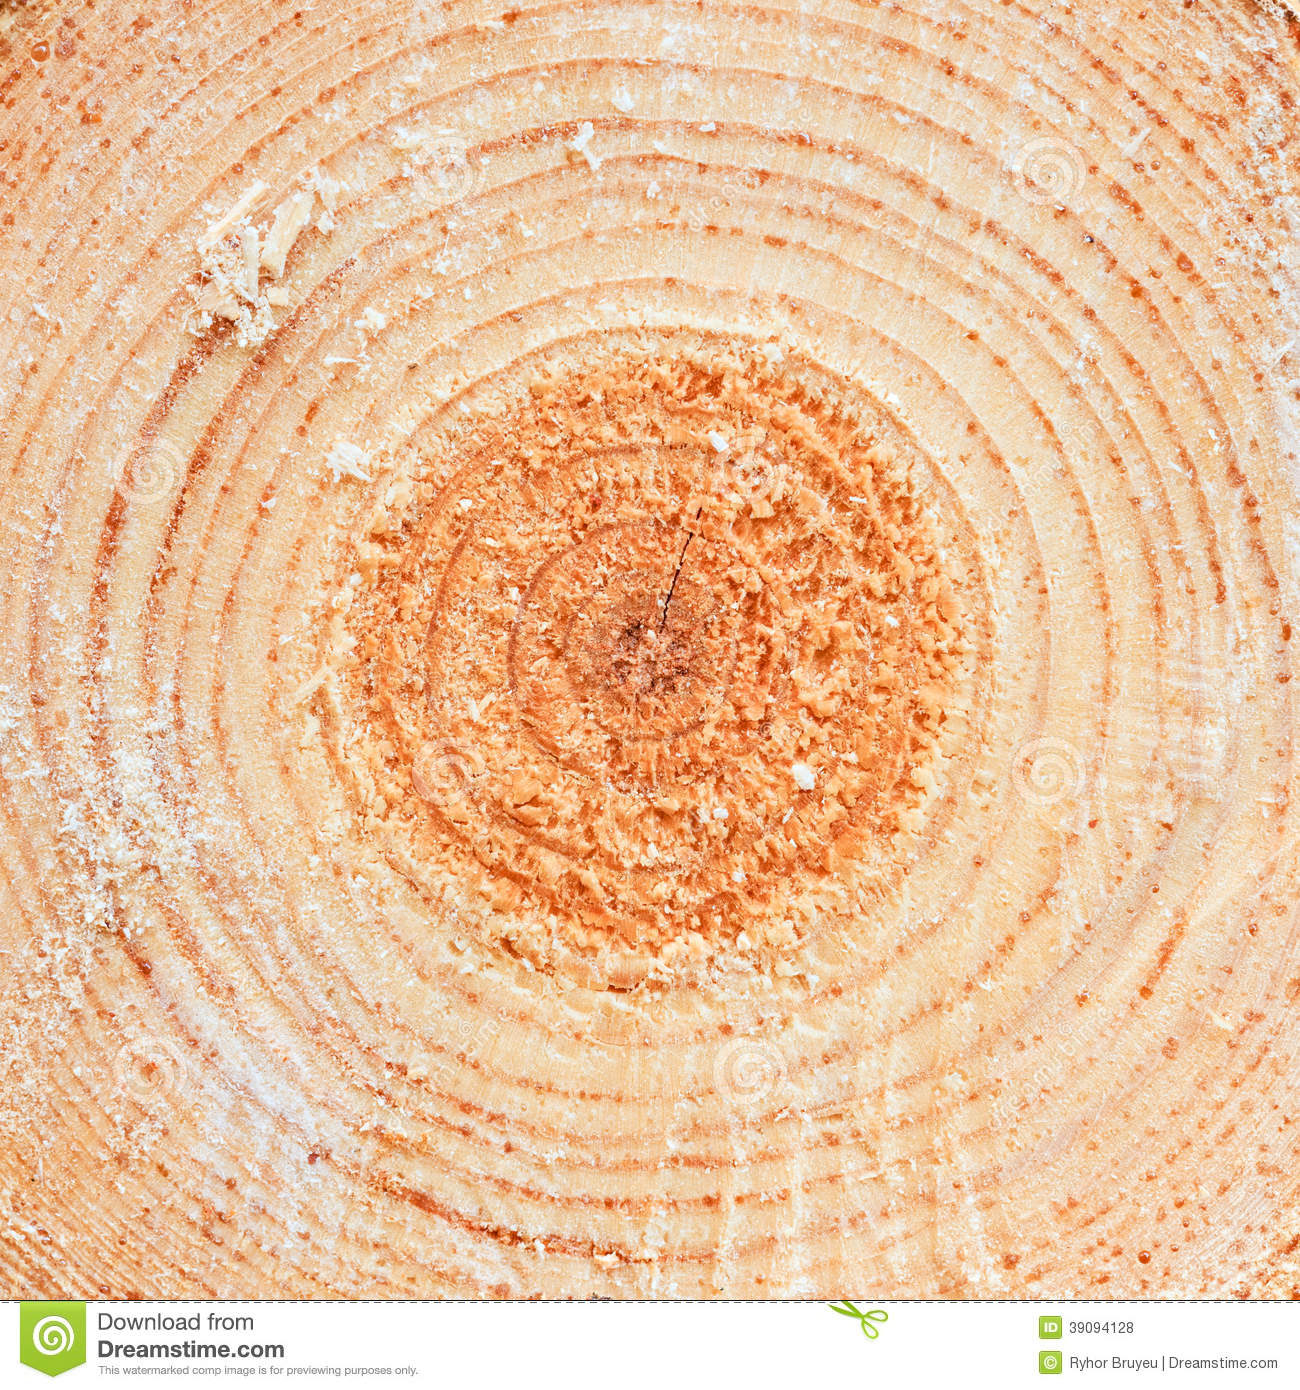 annual rings on sawn pine tree timber wood stock photo